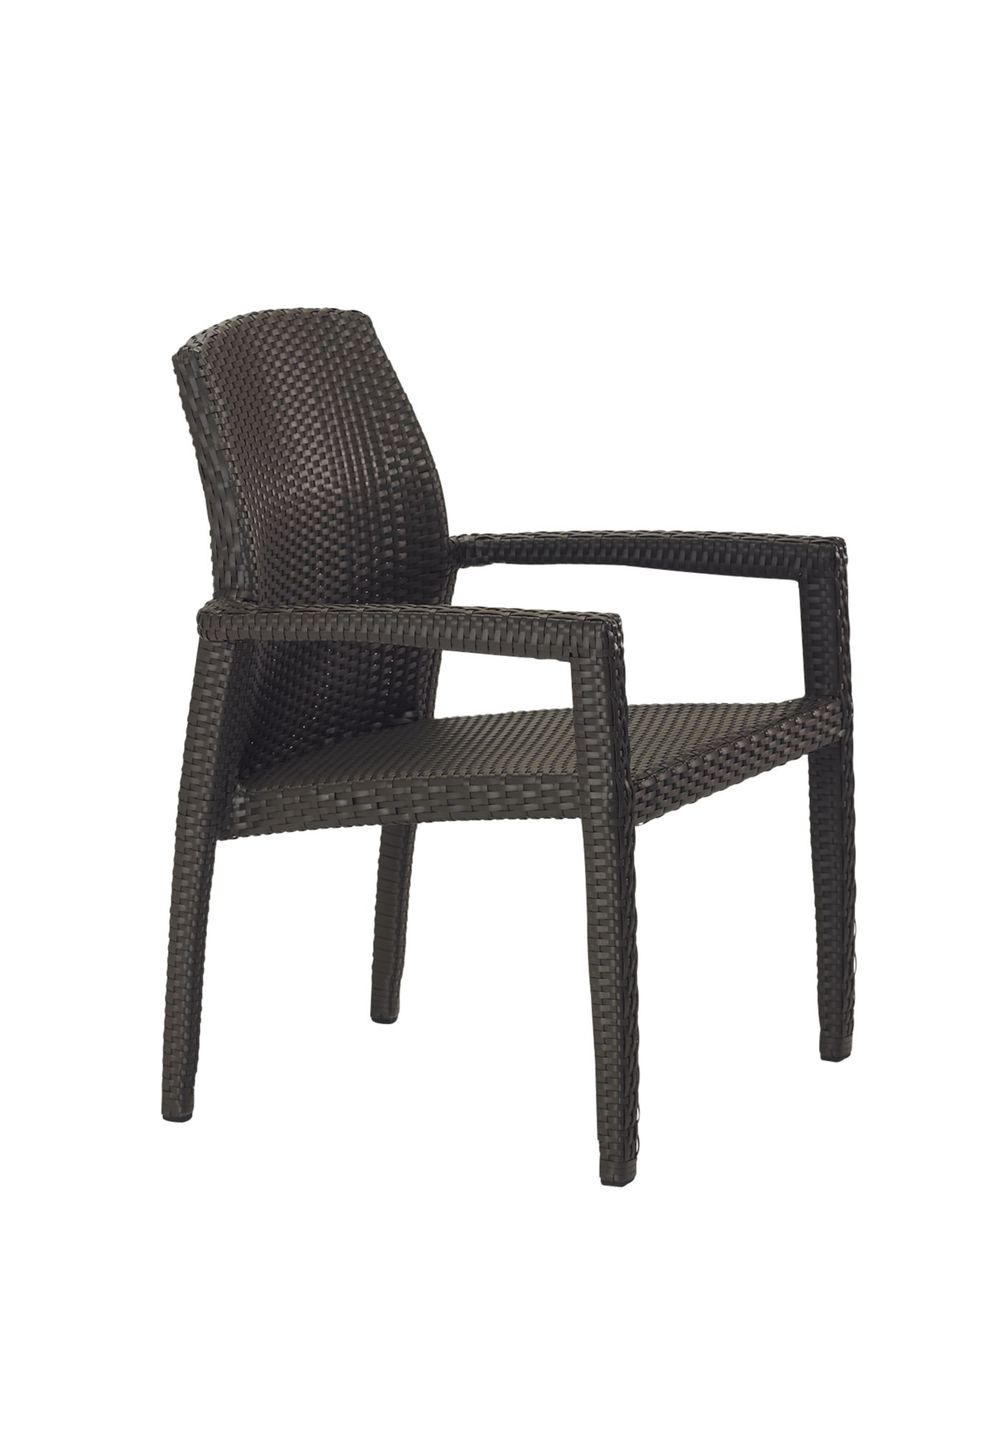 Tropitone Furniture - Dining Chair